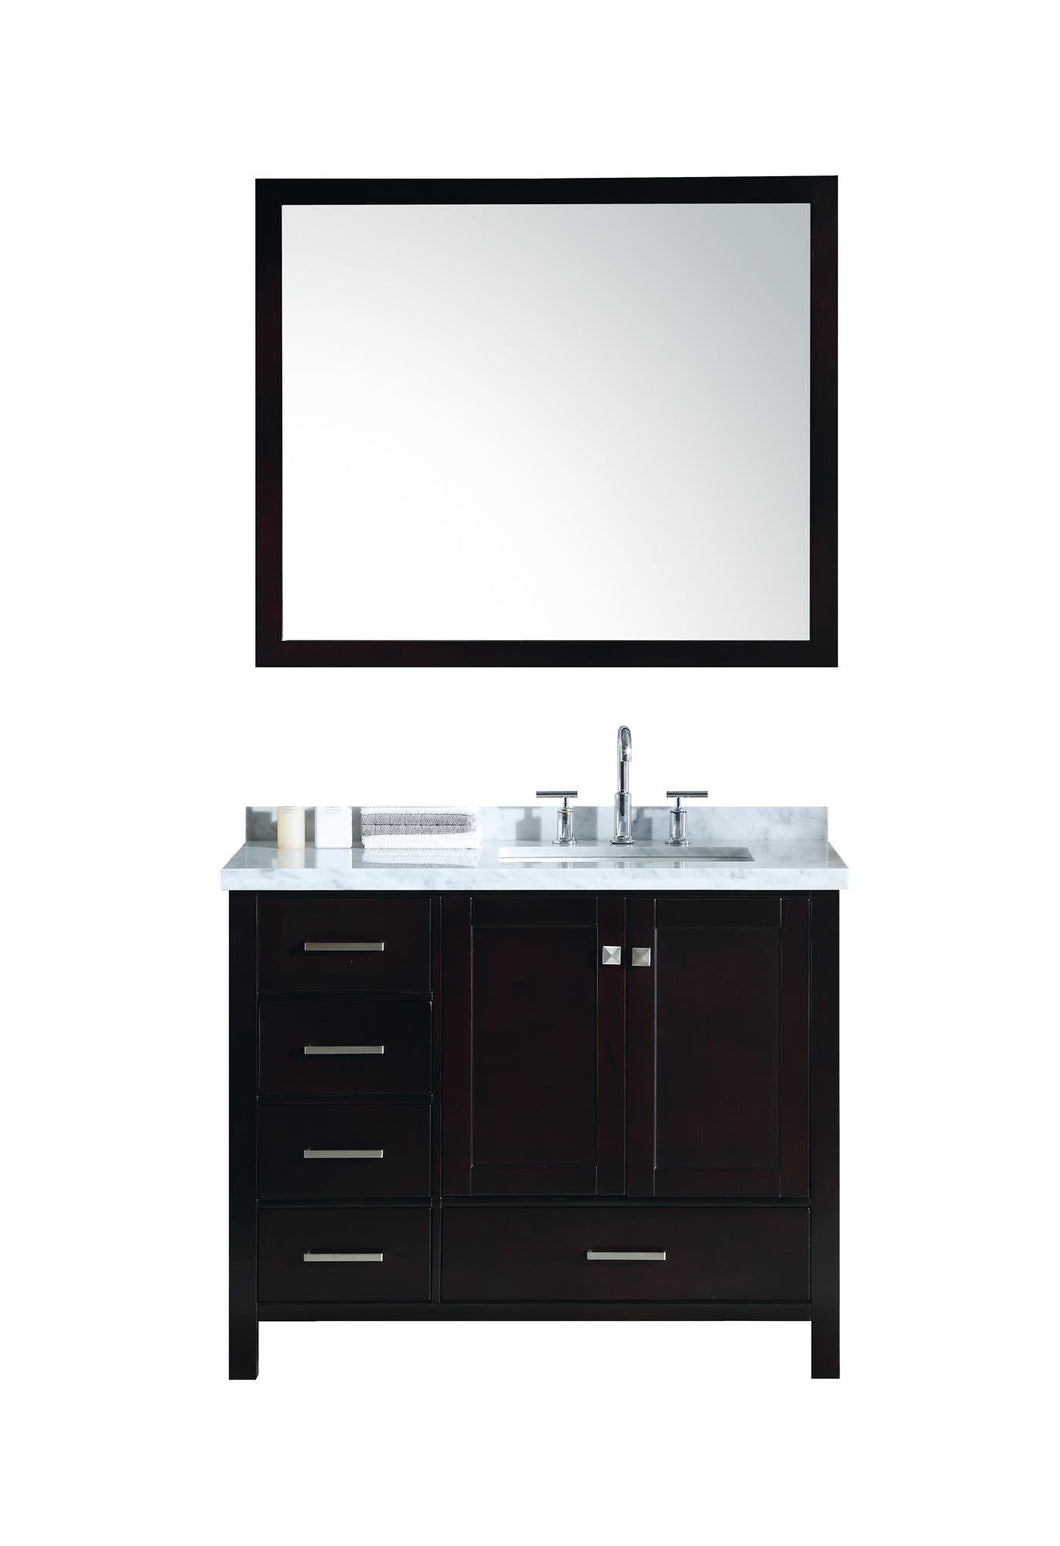 Amazon best ariel cambridge a043s r cwr esp 43 inch right offset single sink bathroom vanity set in espresso with carrara marble countertop rectangular sink